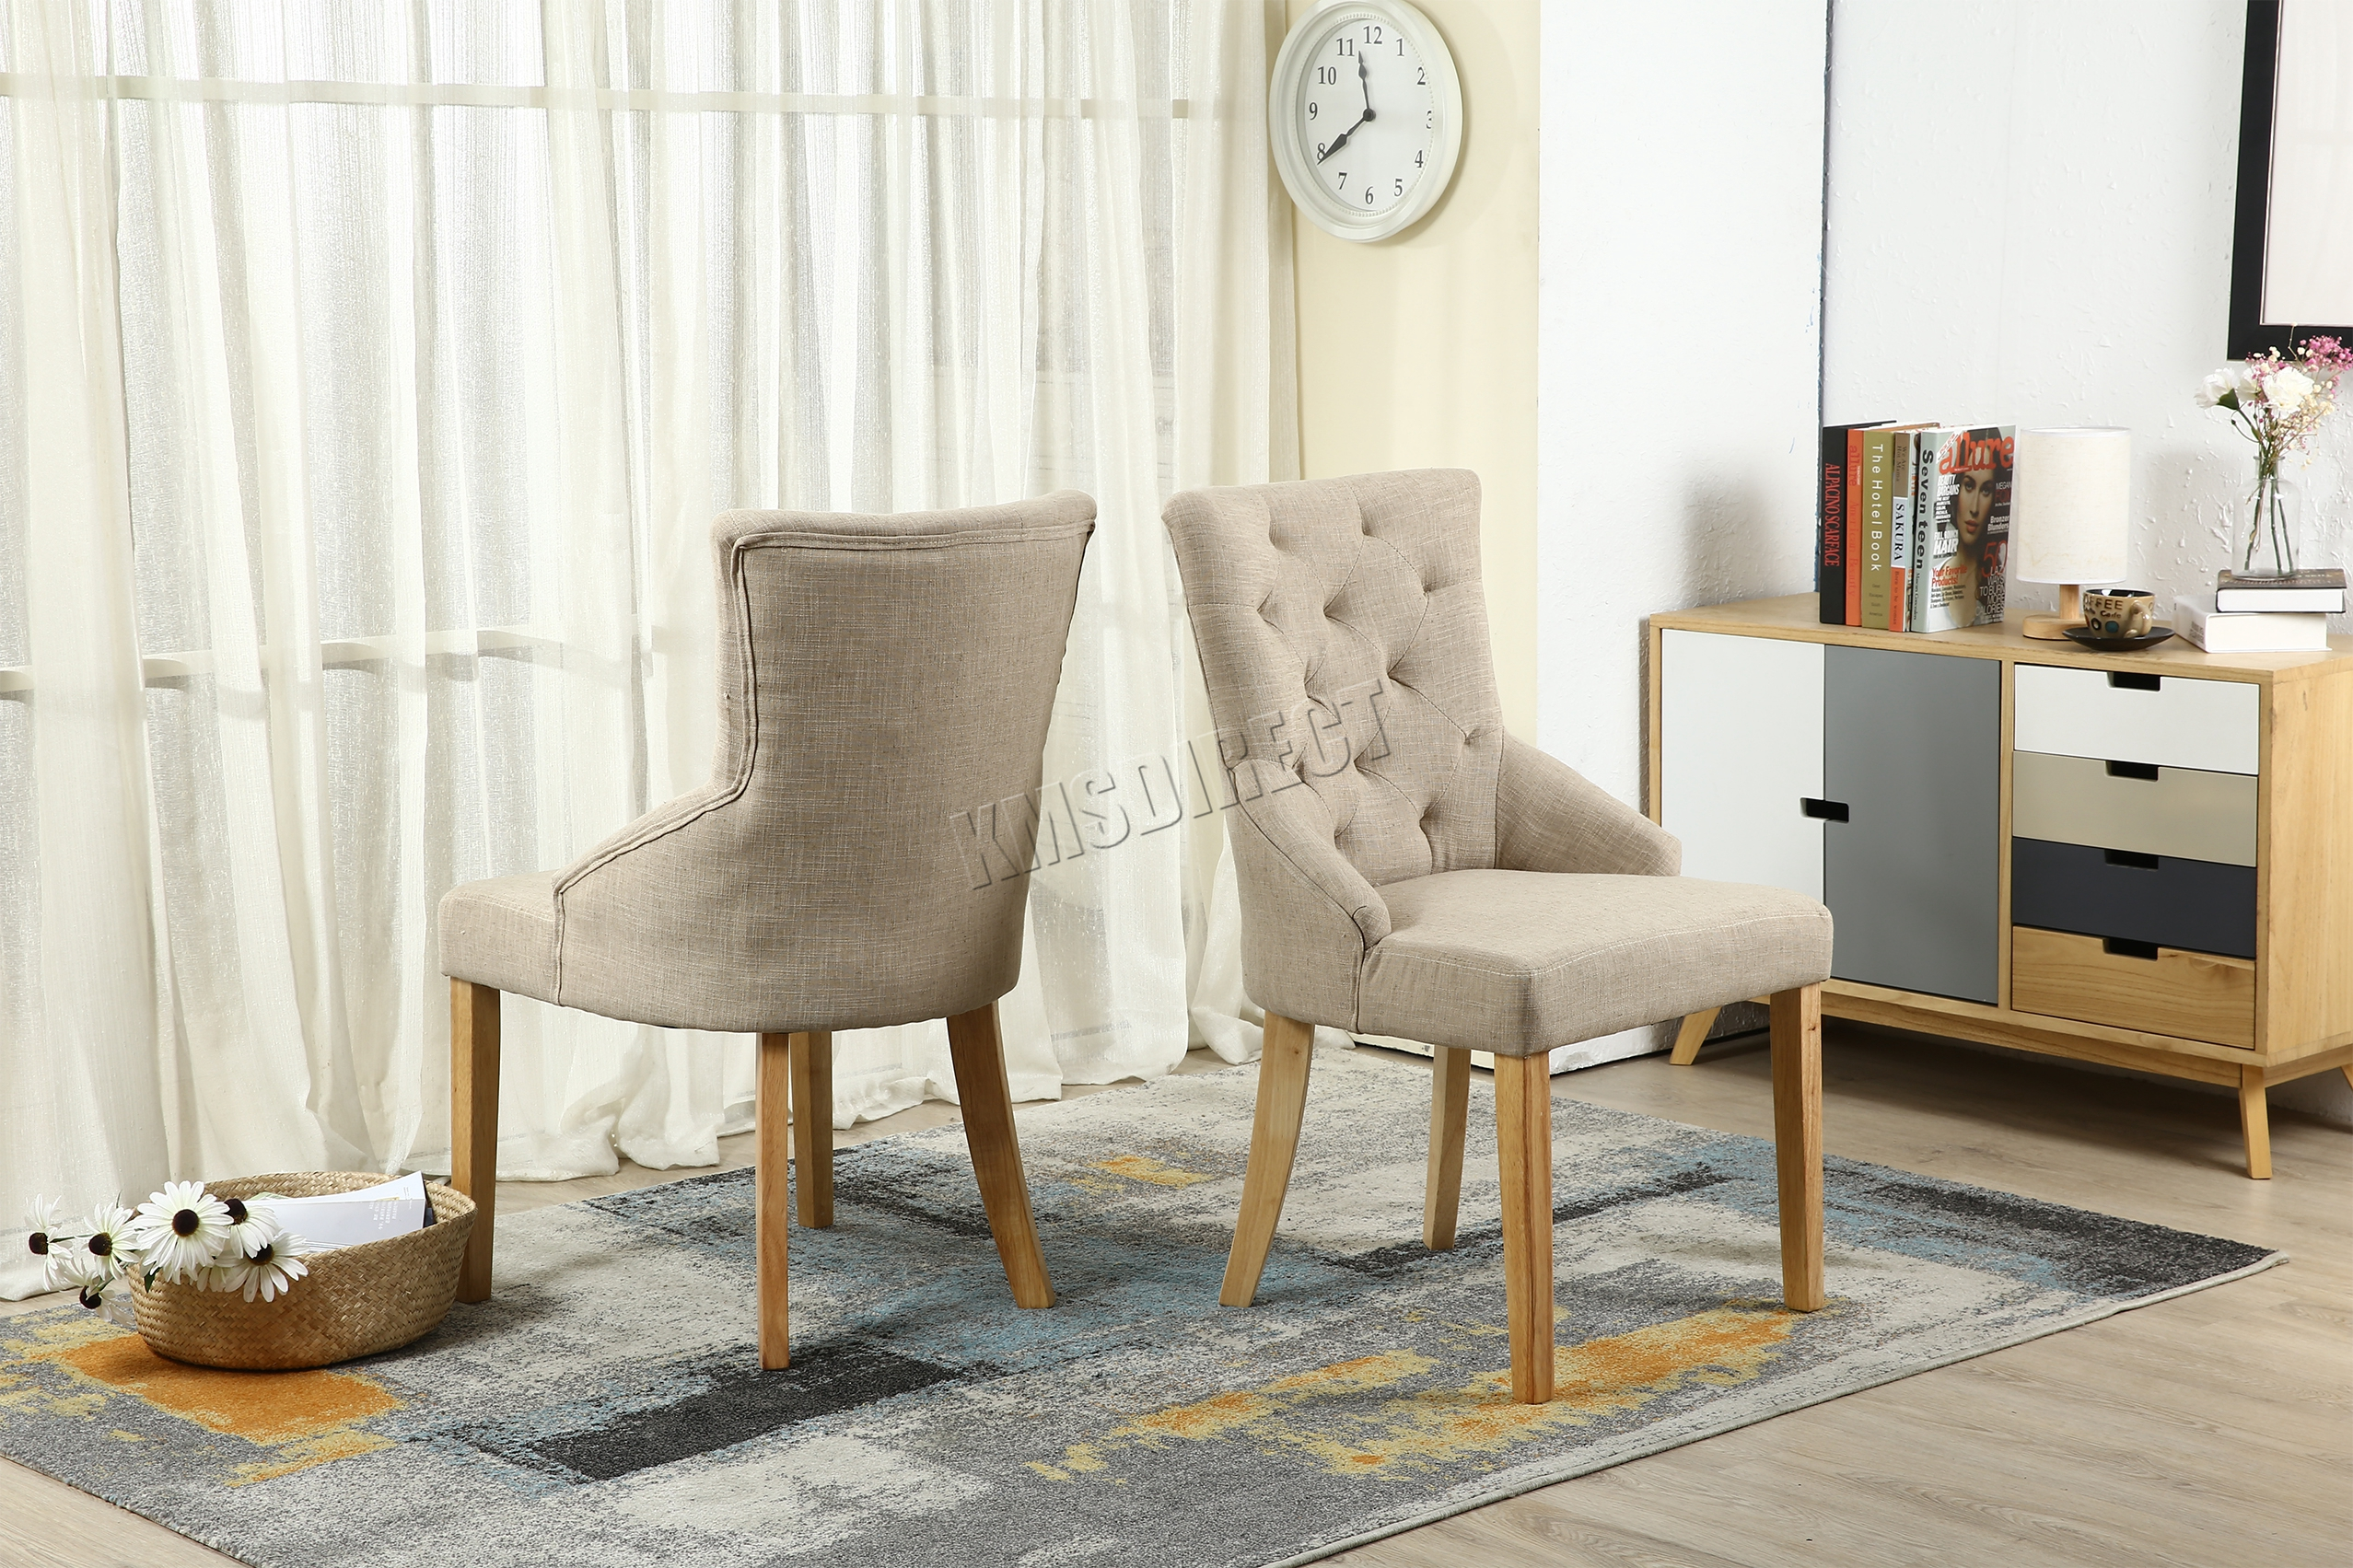 Image Is Loading Foxhunter New Cream Linen Fabric Dining Chairs Scoop